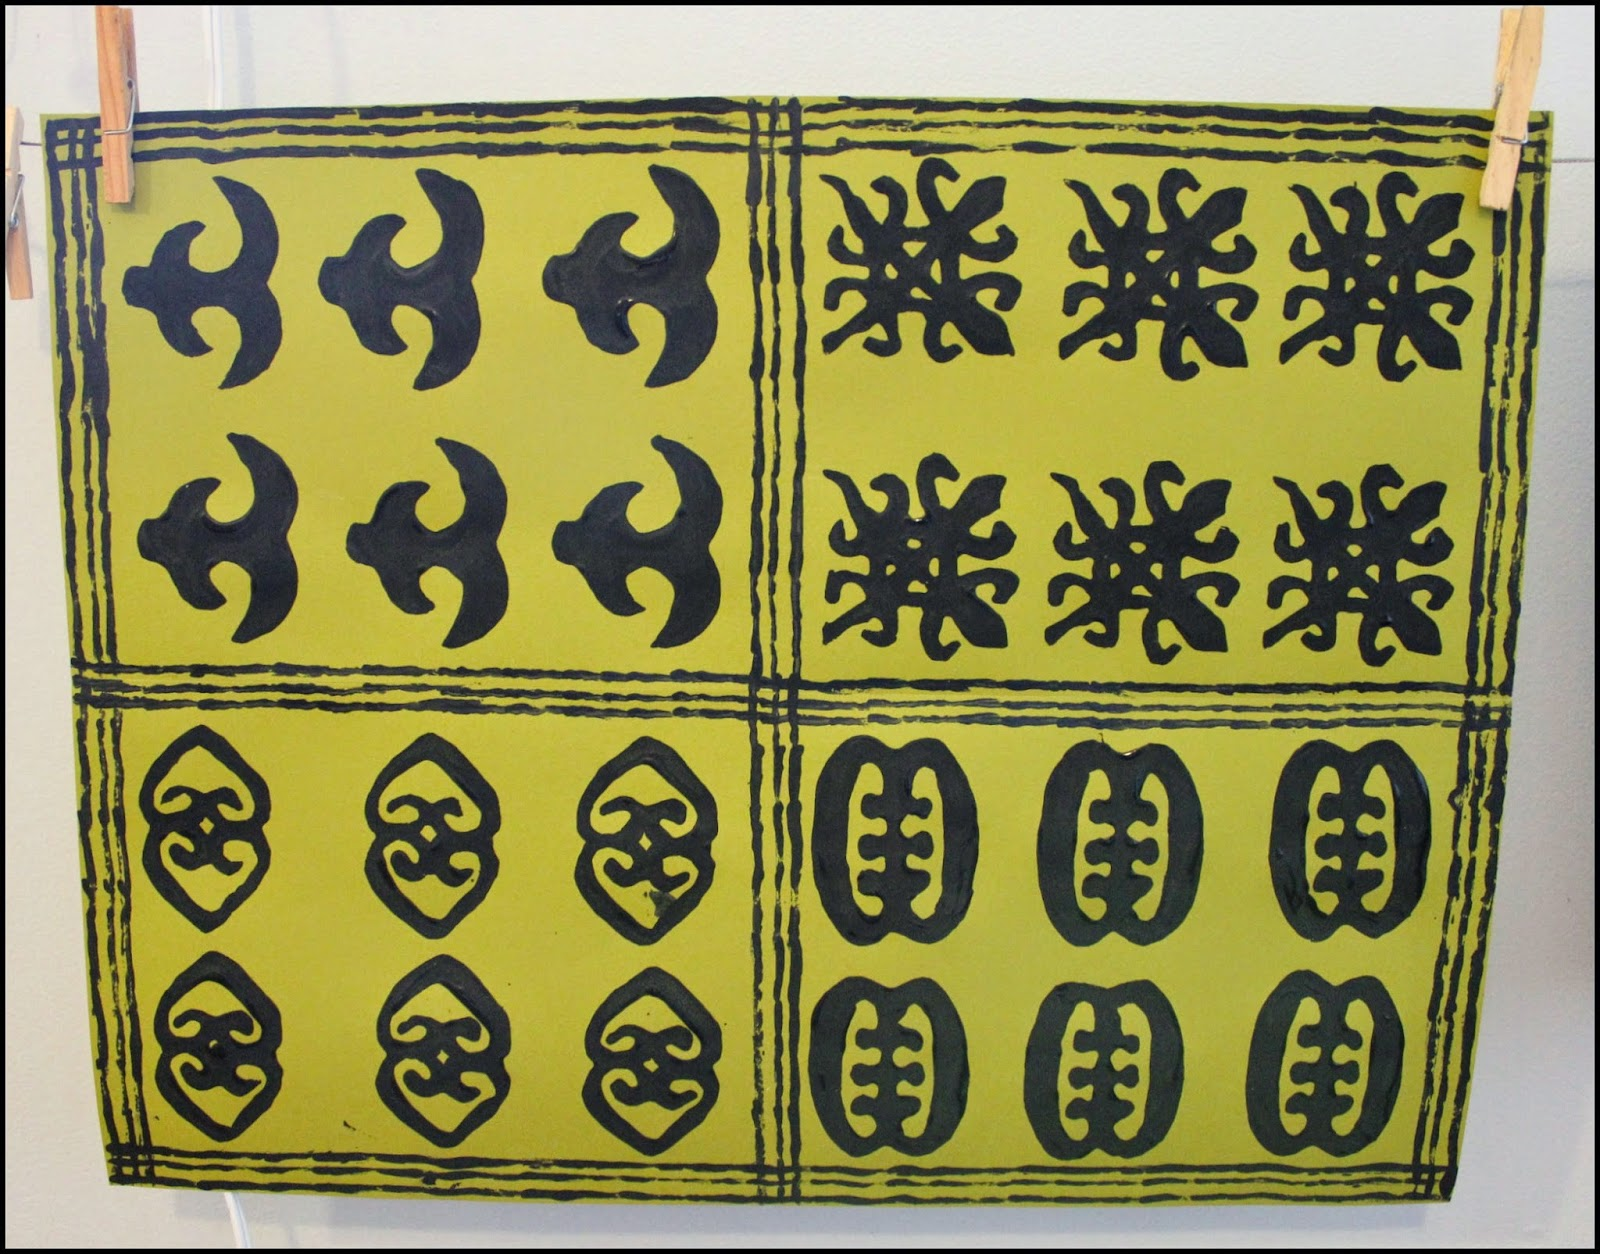 Maries pastiche adinkra cloth make your own adinkra cloth craft peas adinkra symbols mean biocorpaavc